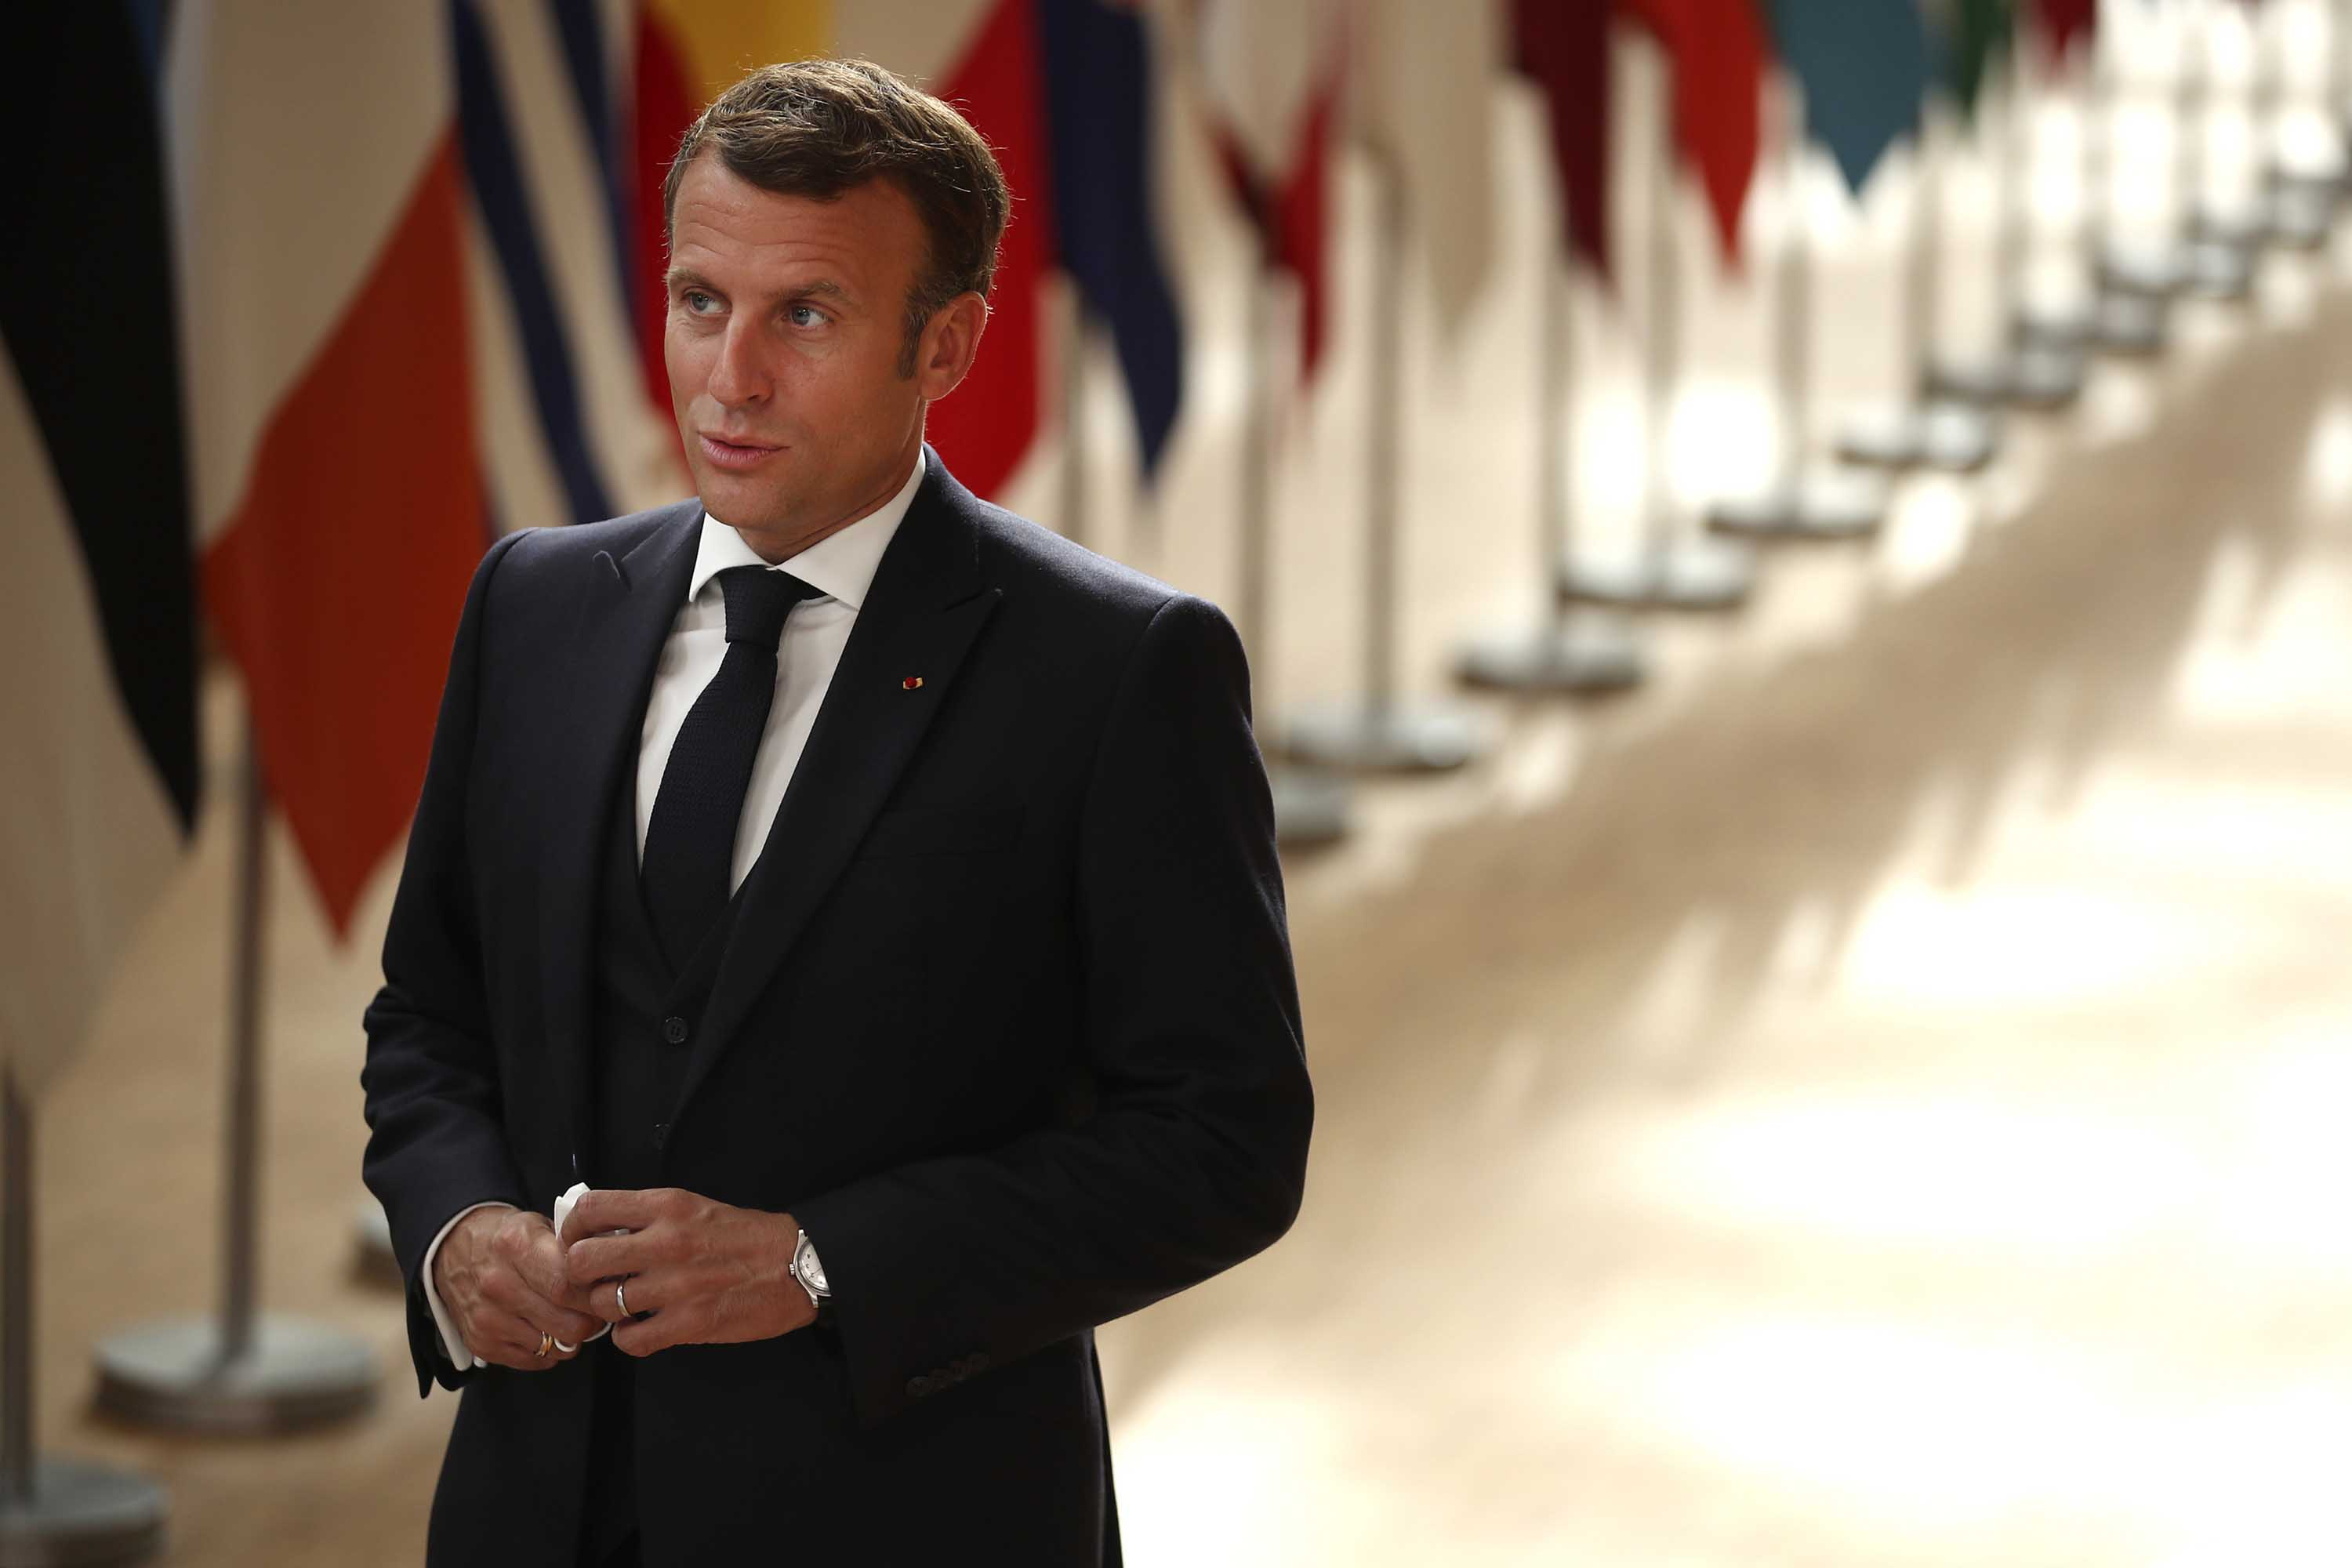 French President Emmanuel Macron makes a statement as he arrives for an EU summit at the European Council building in Brussels, Belgium, on July 19.